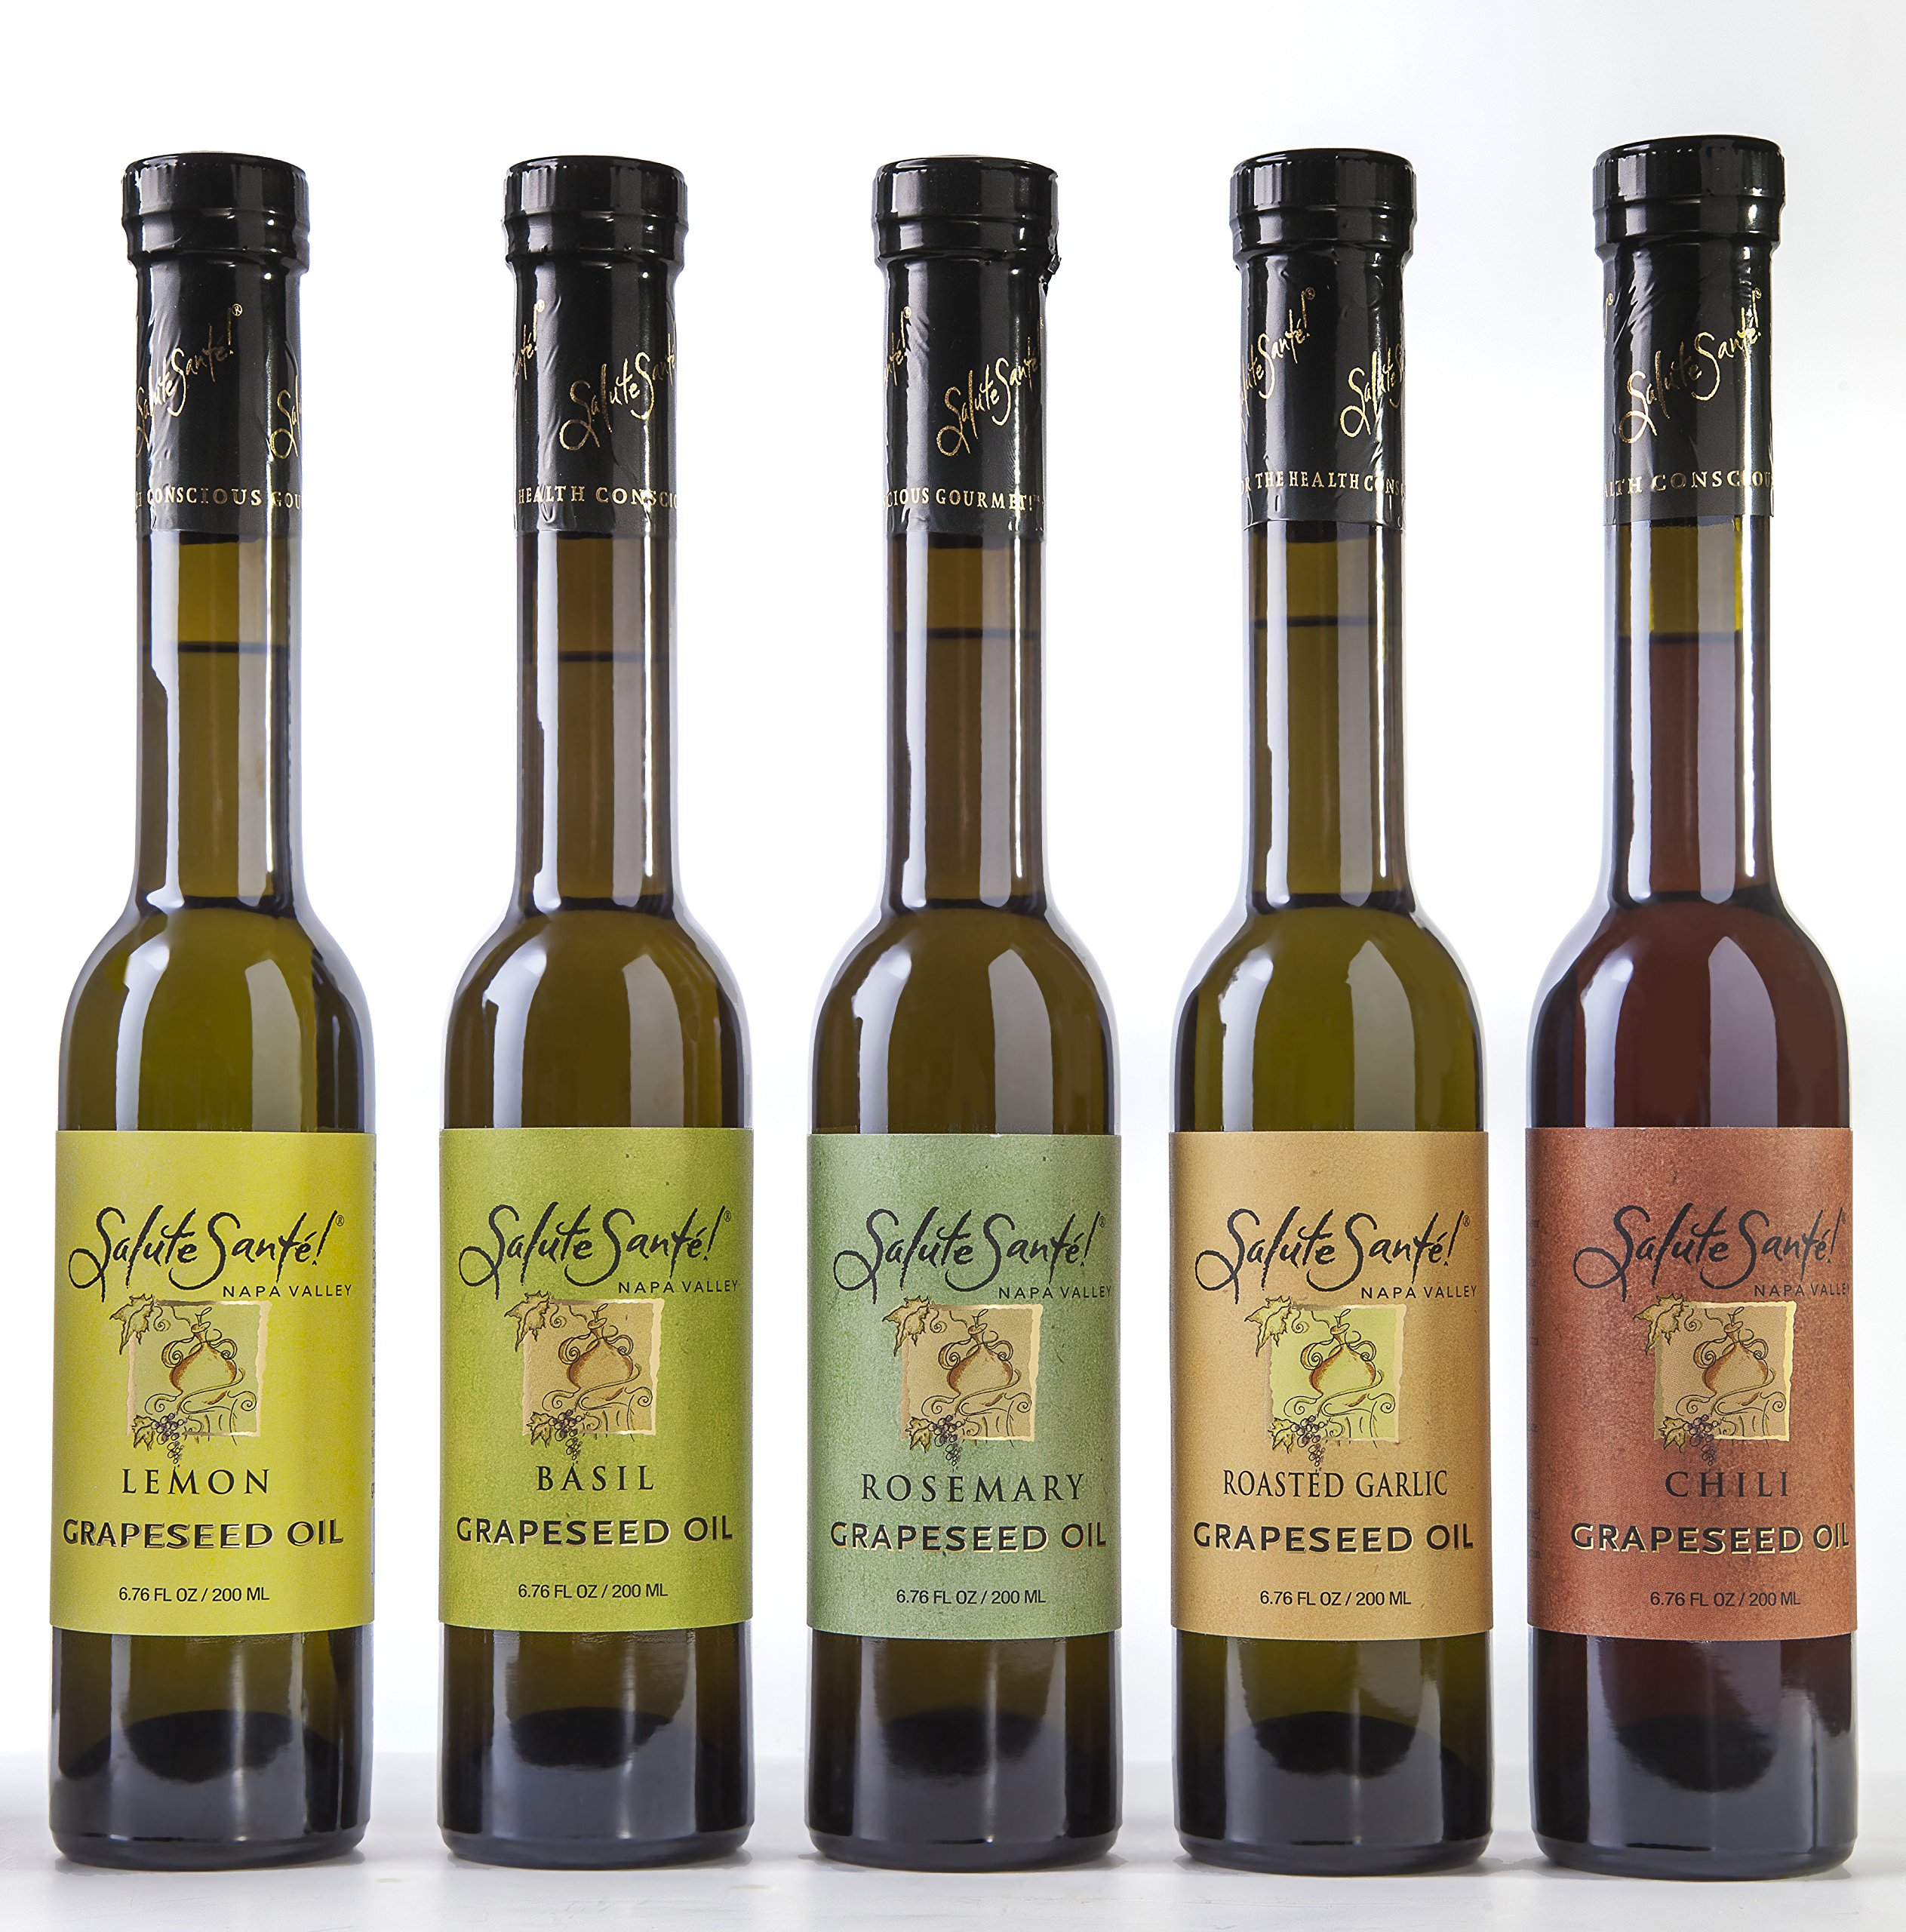 Salute Sante Infused Grapeseed Oil 200 ml (Roasted Garlic) Six Pack by Salute Santé